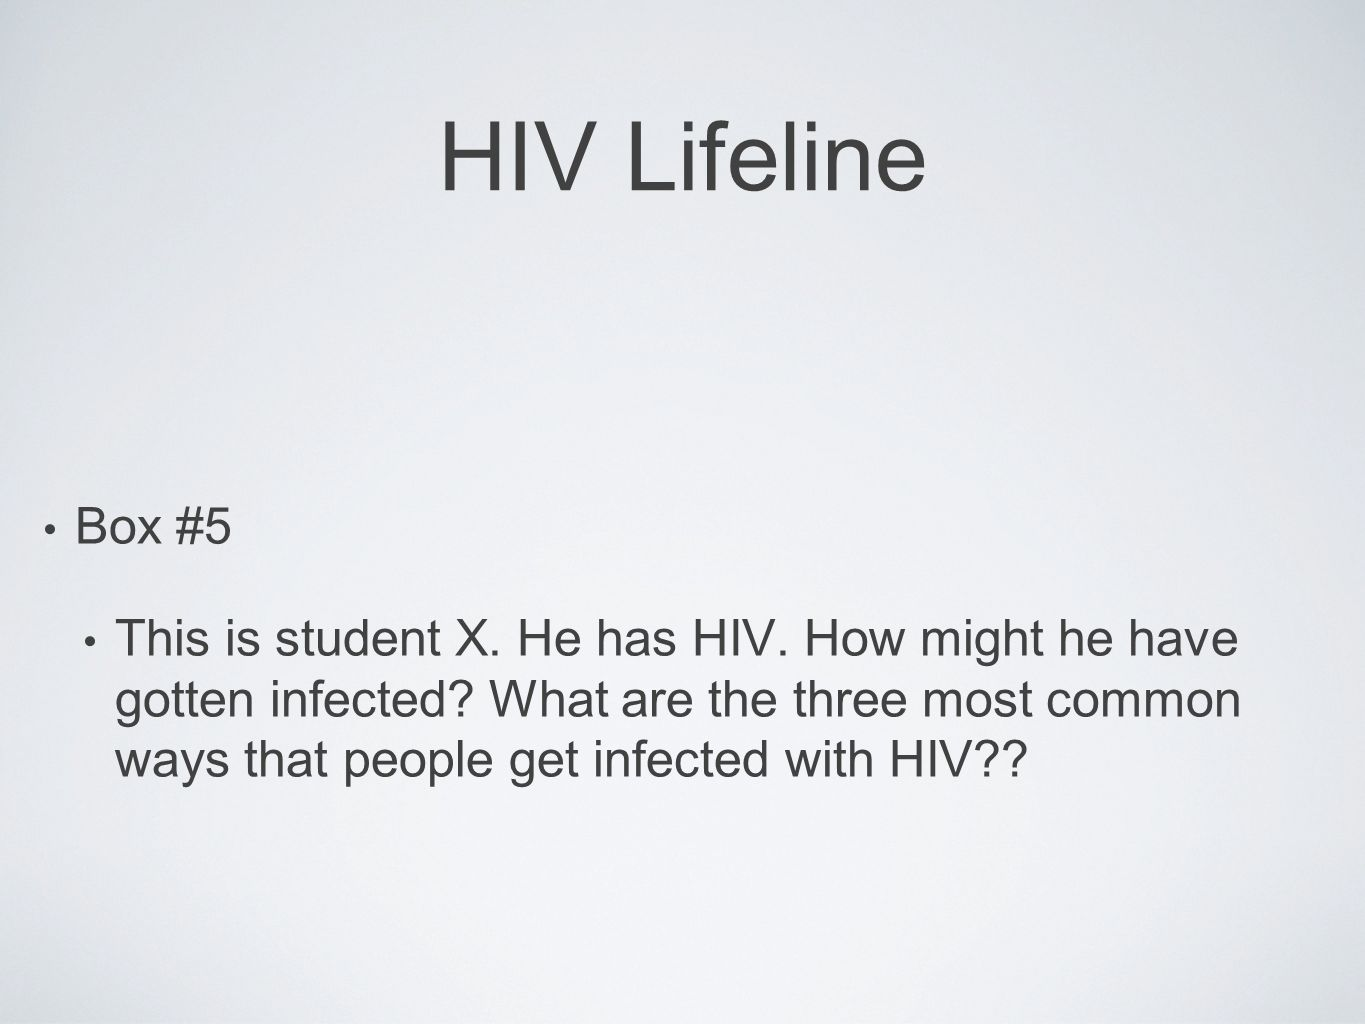 HIV Lifeline Box #5.